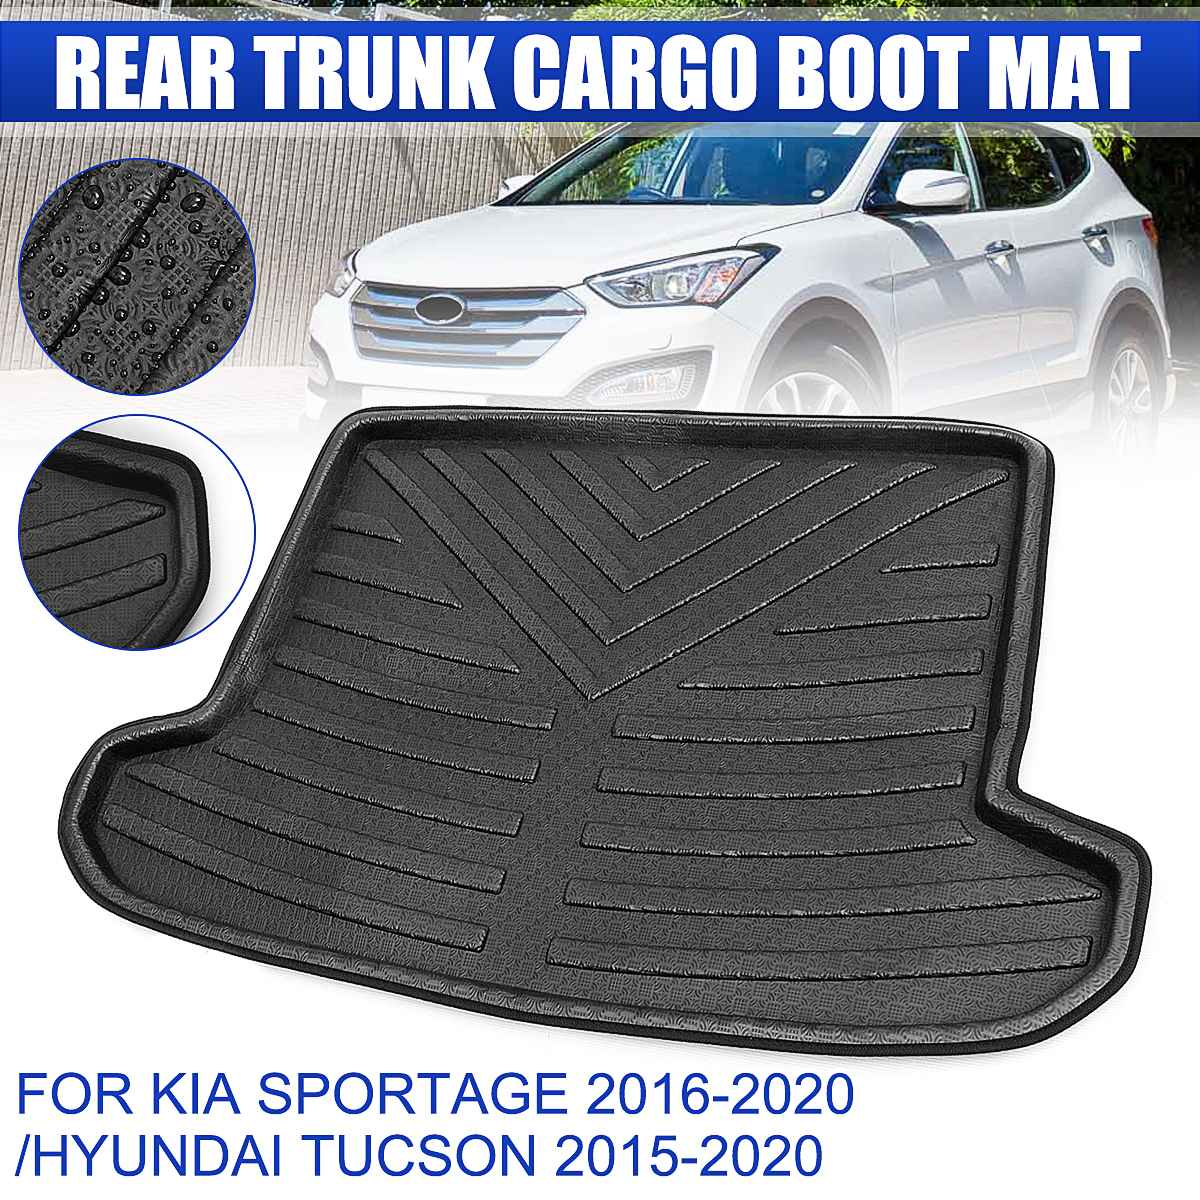 Rear Cargo Boot Liner Trunk Floor Mat Tray Carpet Mats Mud Kick for KIA Sportage 2016 2017 2018 2019 2020 For Hyundai Tucson